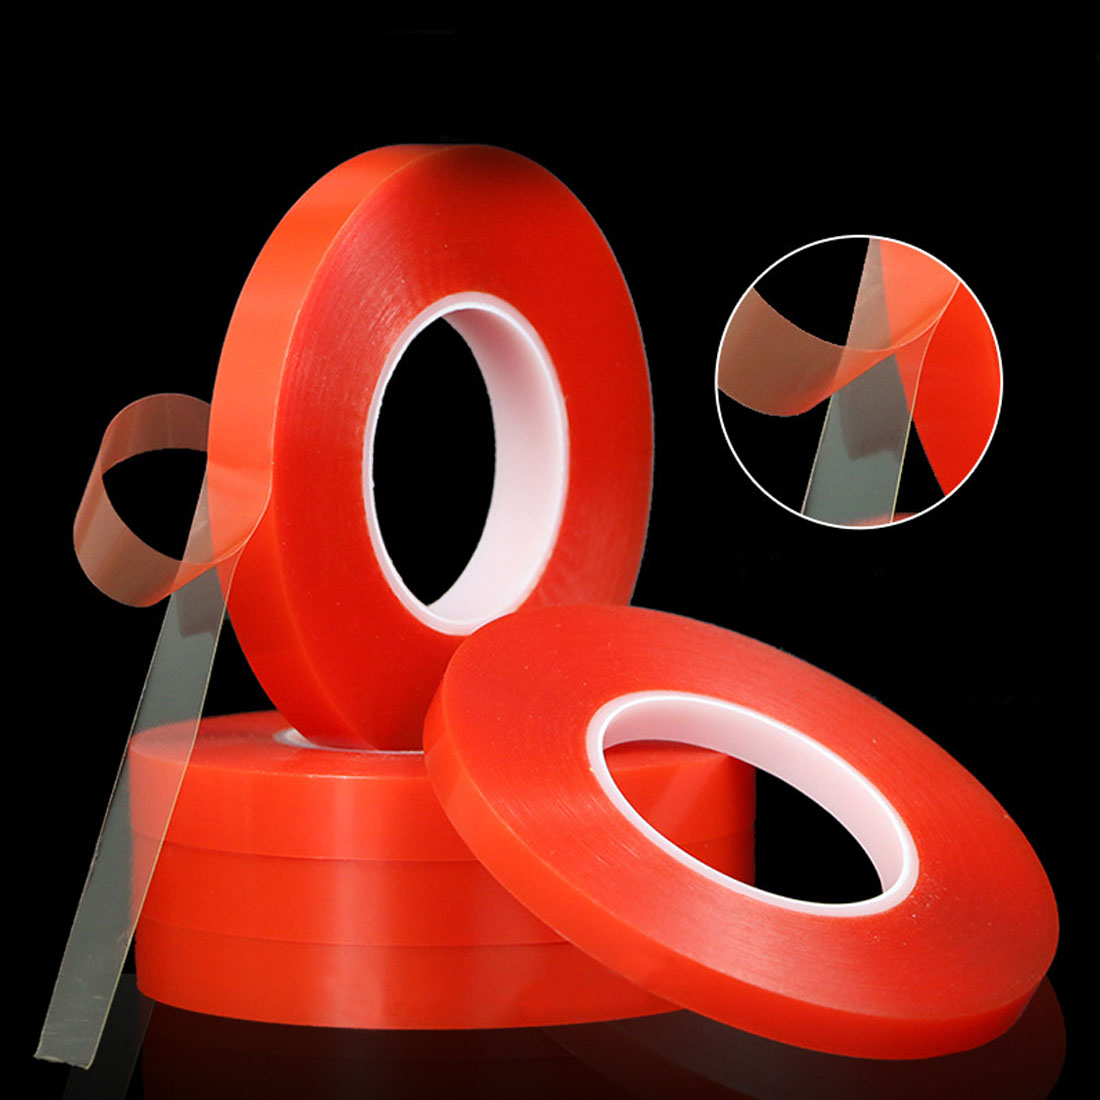 2mm 50M Double Sided Tape Strong Acrylic Adhesive Red Film Clear Sticker For Mobile Phone LCD Pannel Display Screen Repair Tool